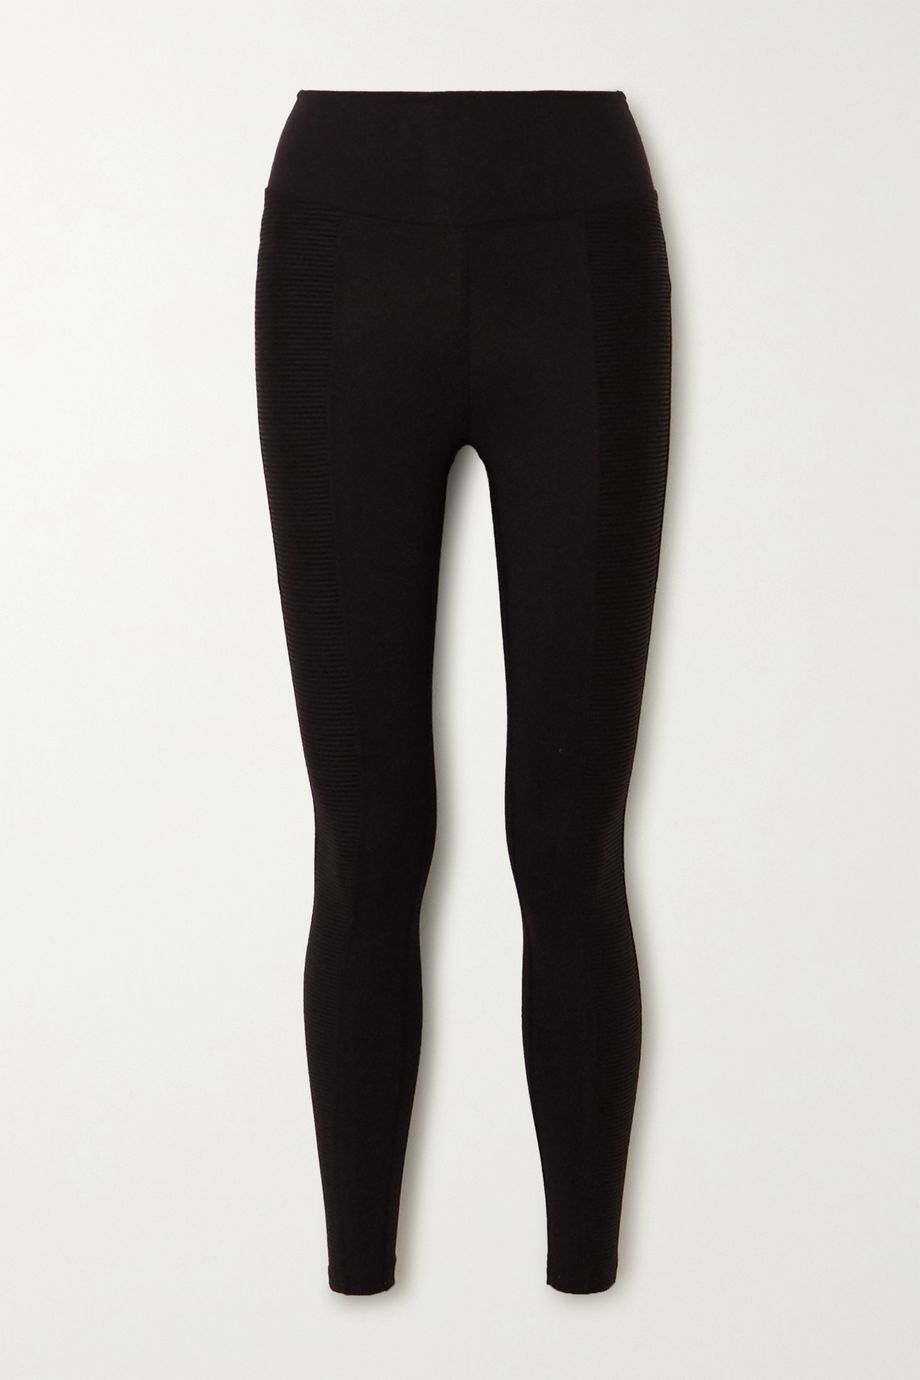 Year of Ours The 54 ribbed stretch leggings